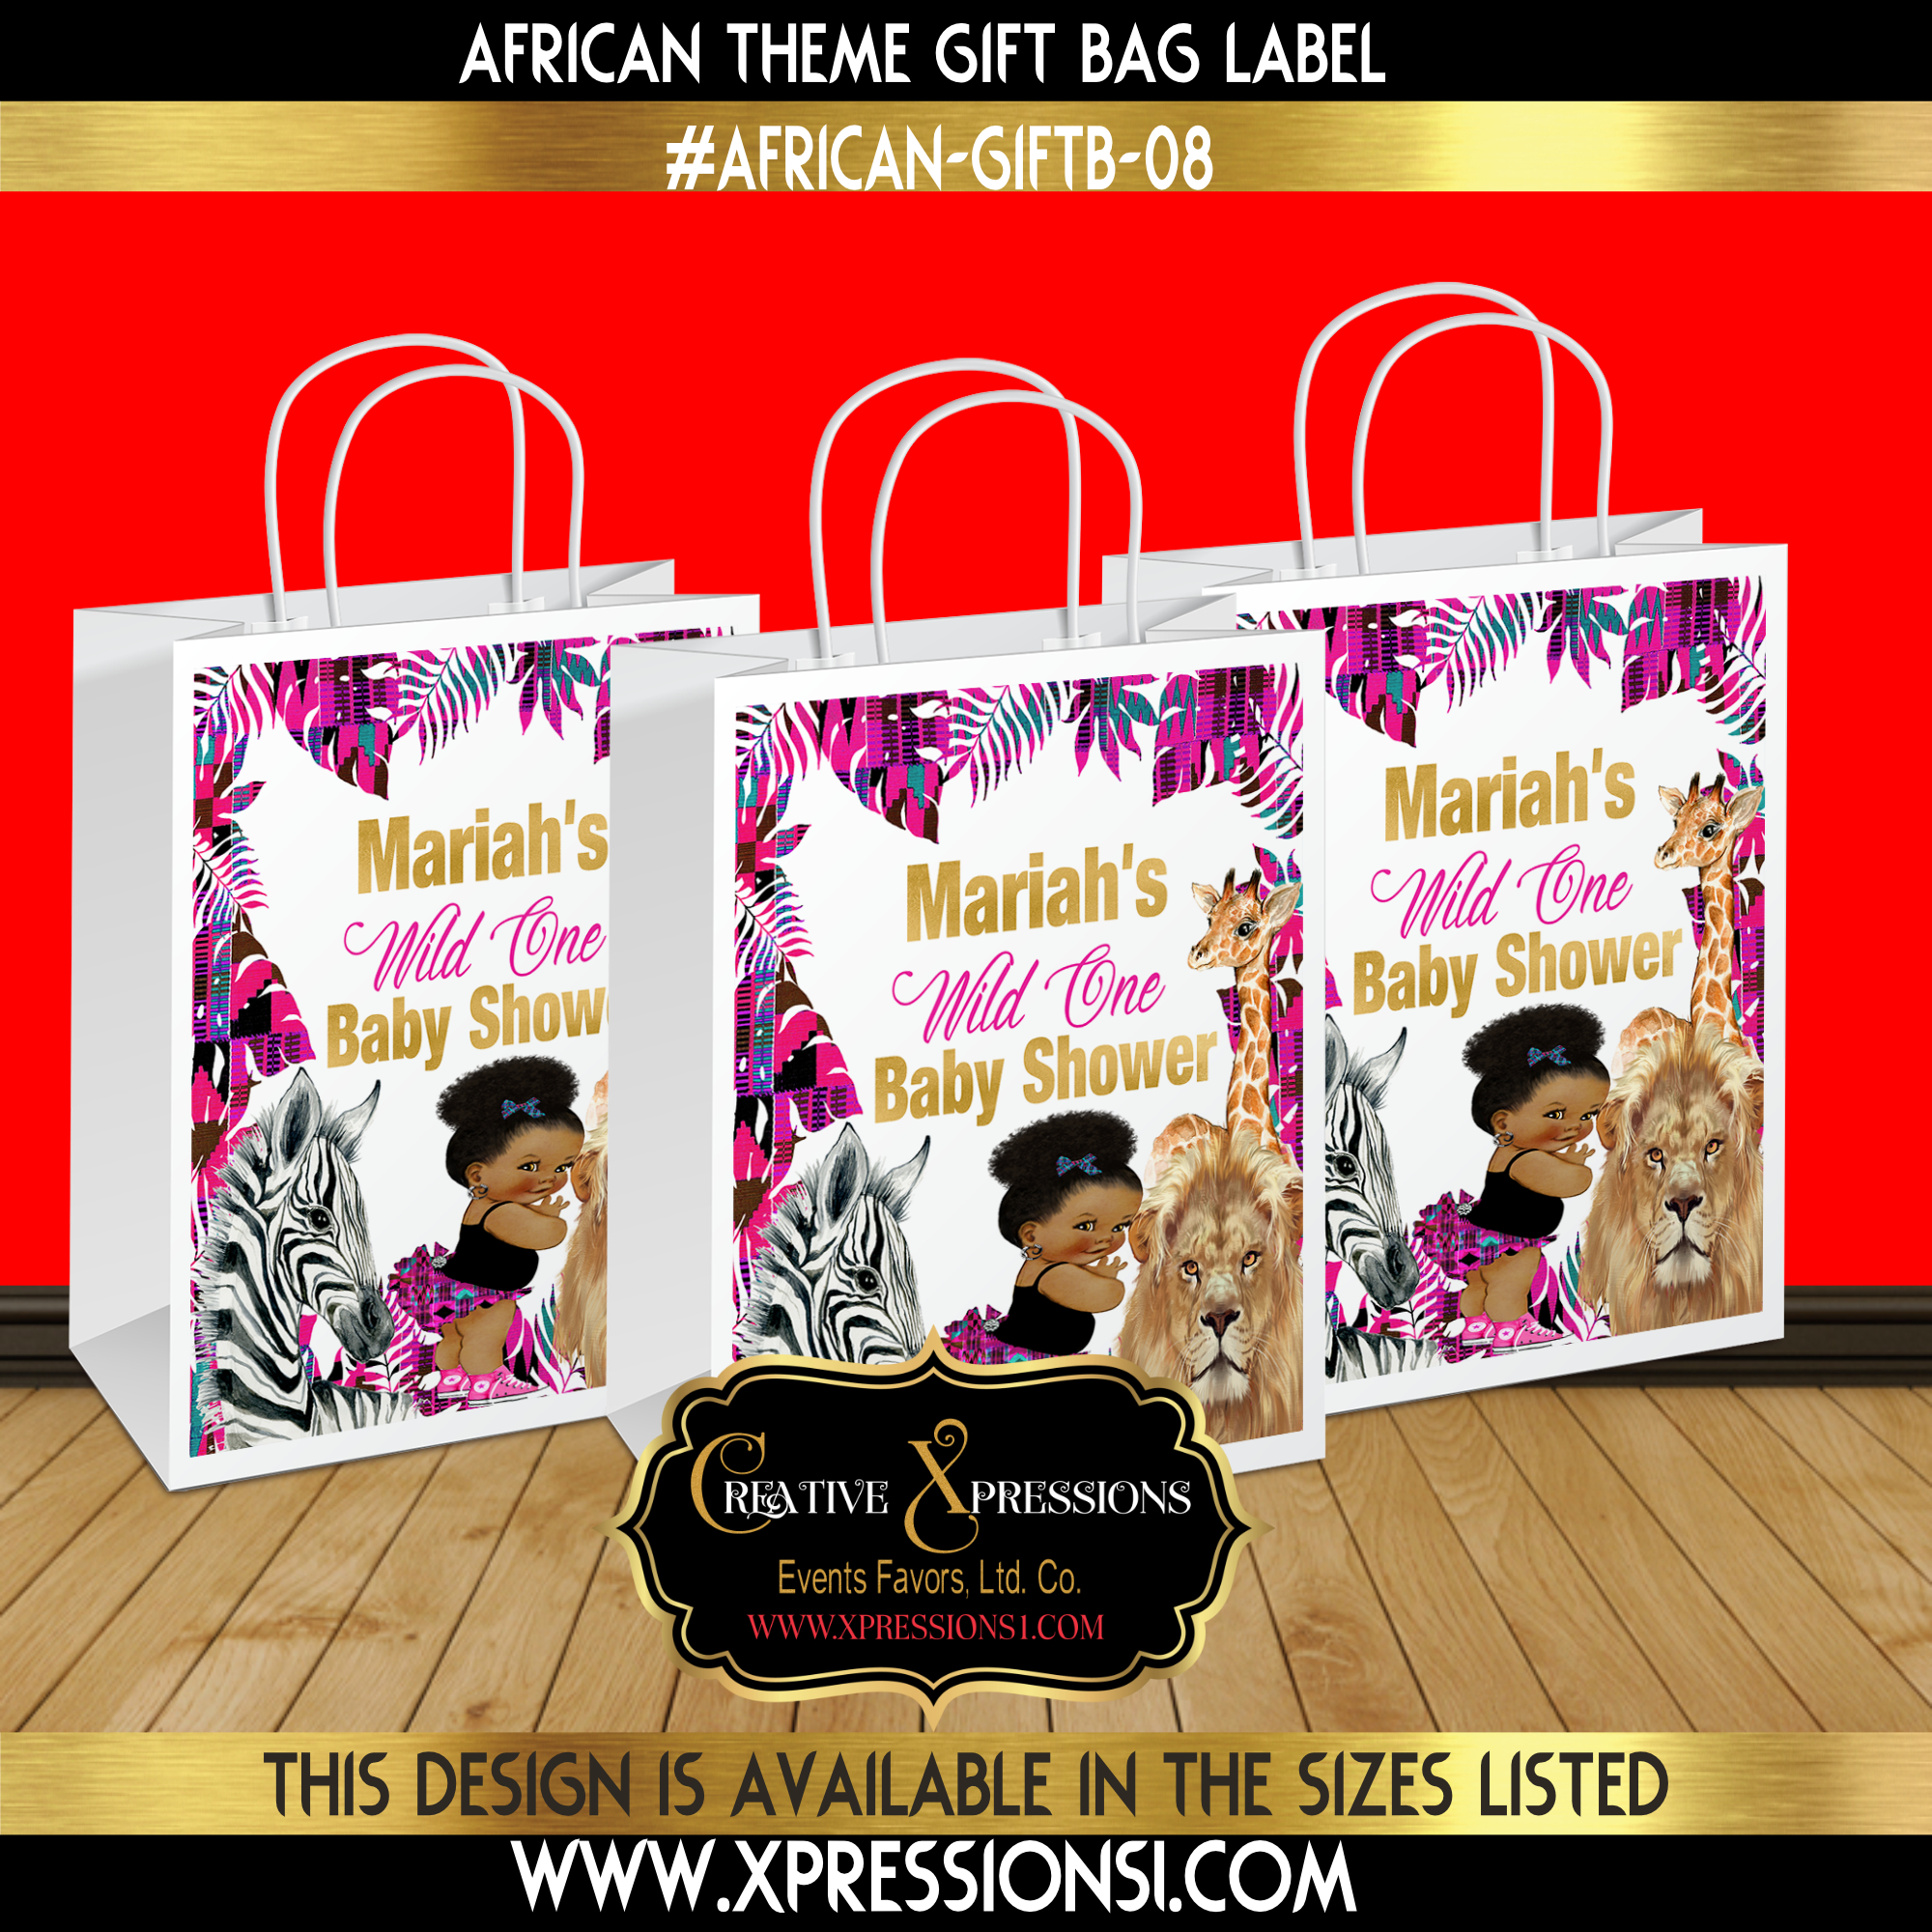 Wild One African Gift Bag